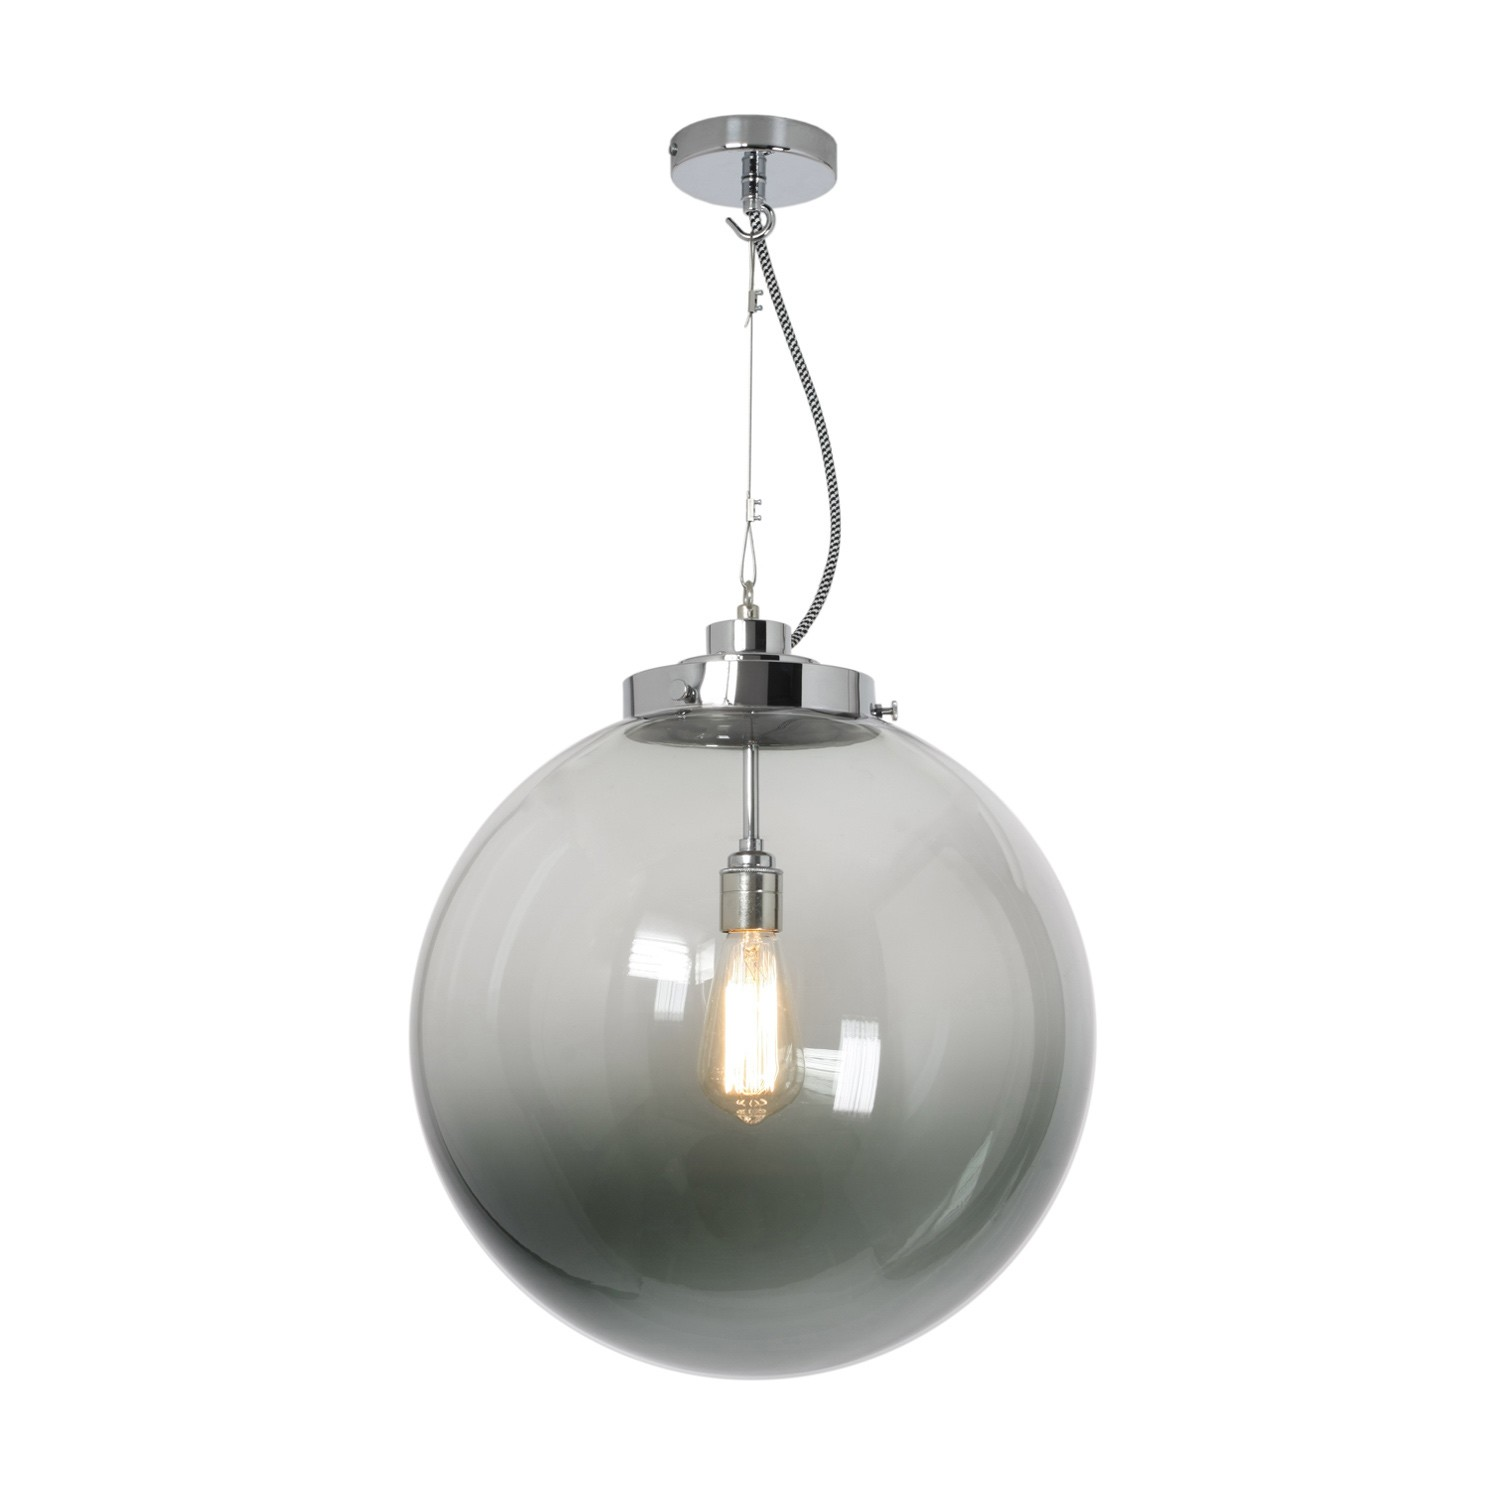 Globe Pendant Light Anthracite and Chrome, Large